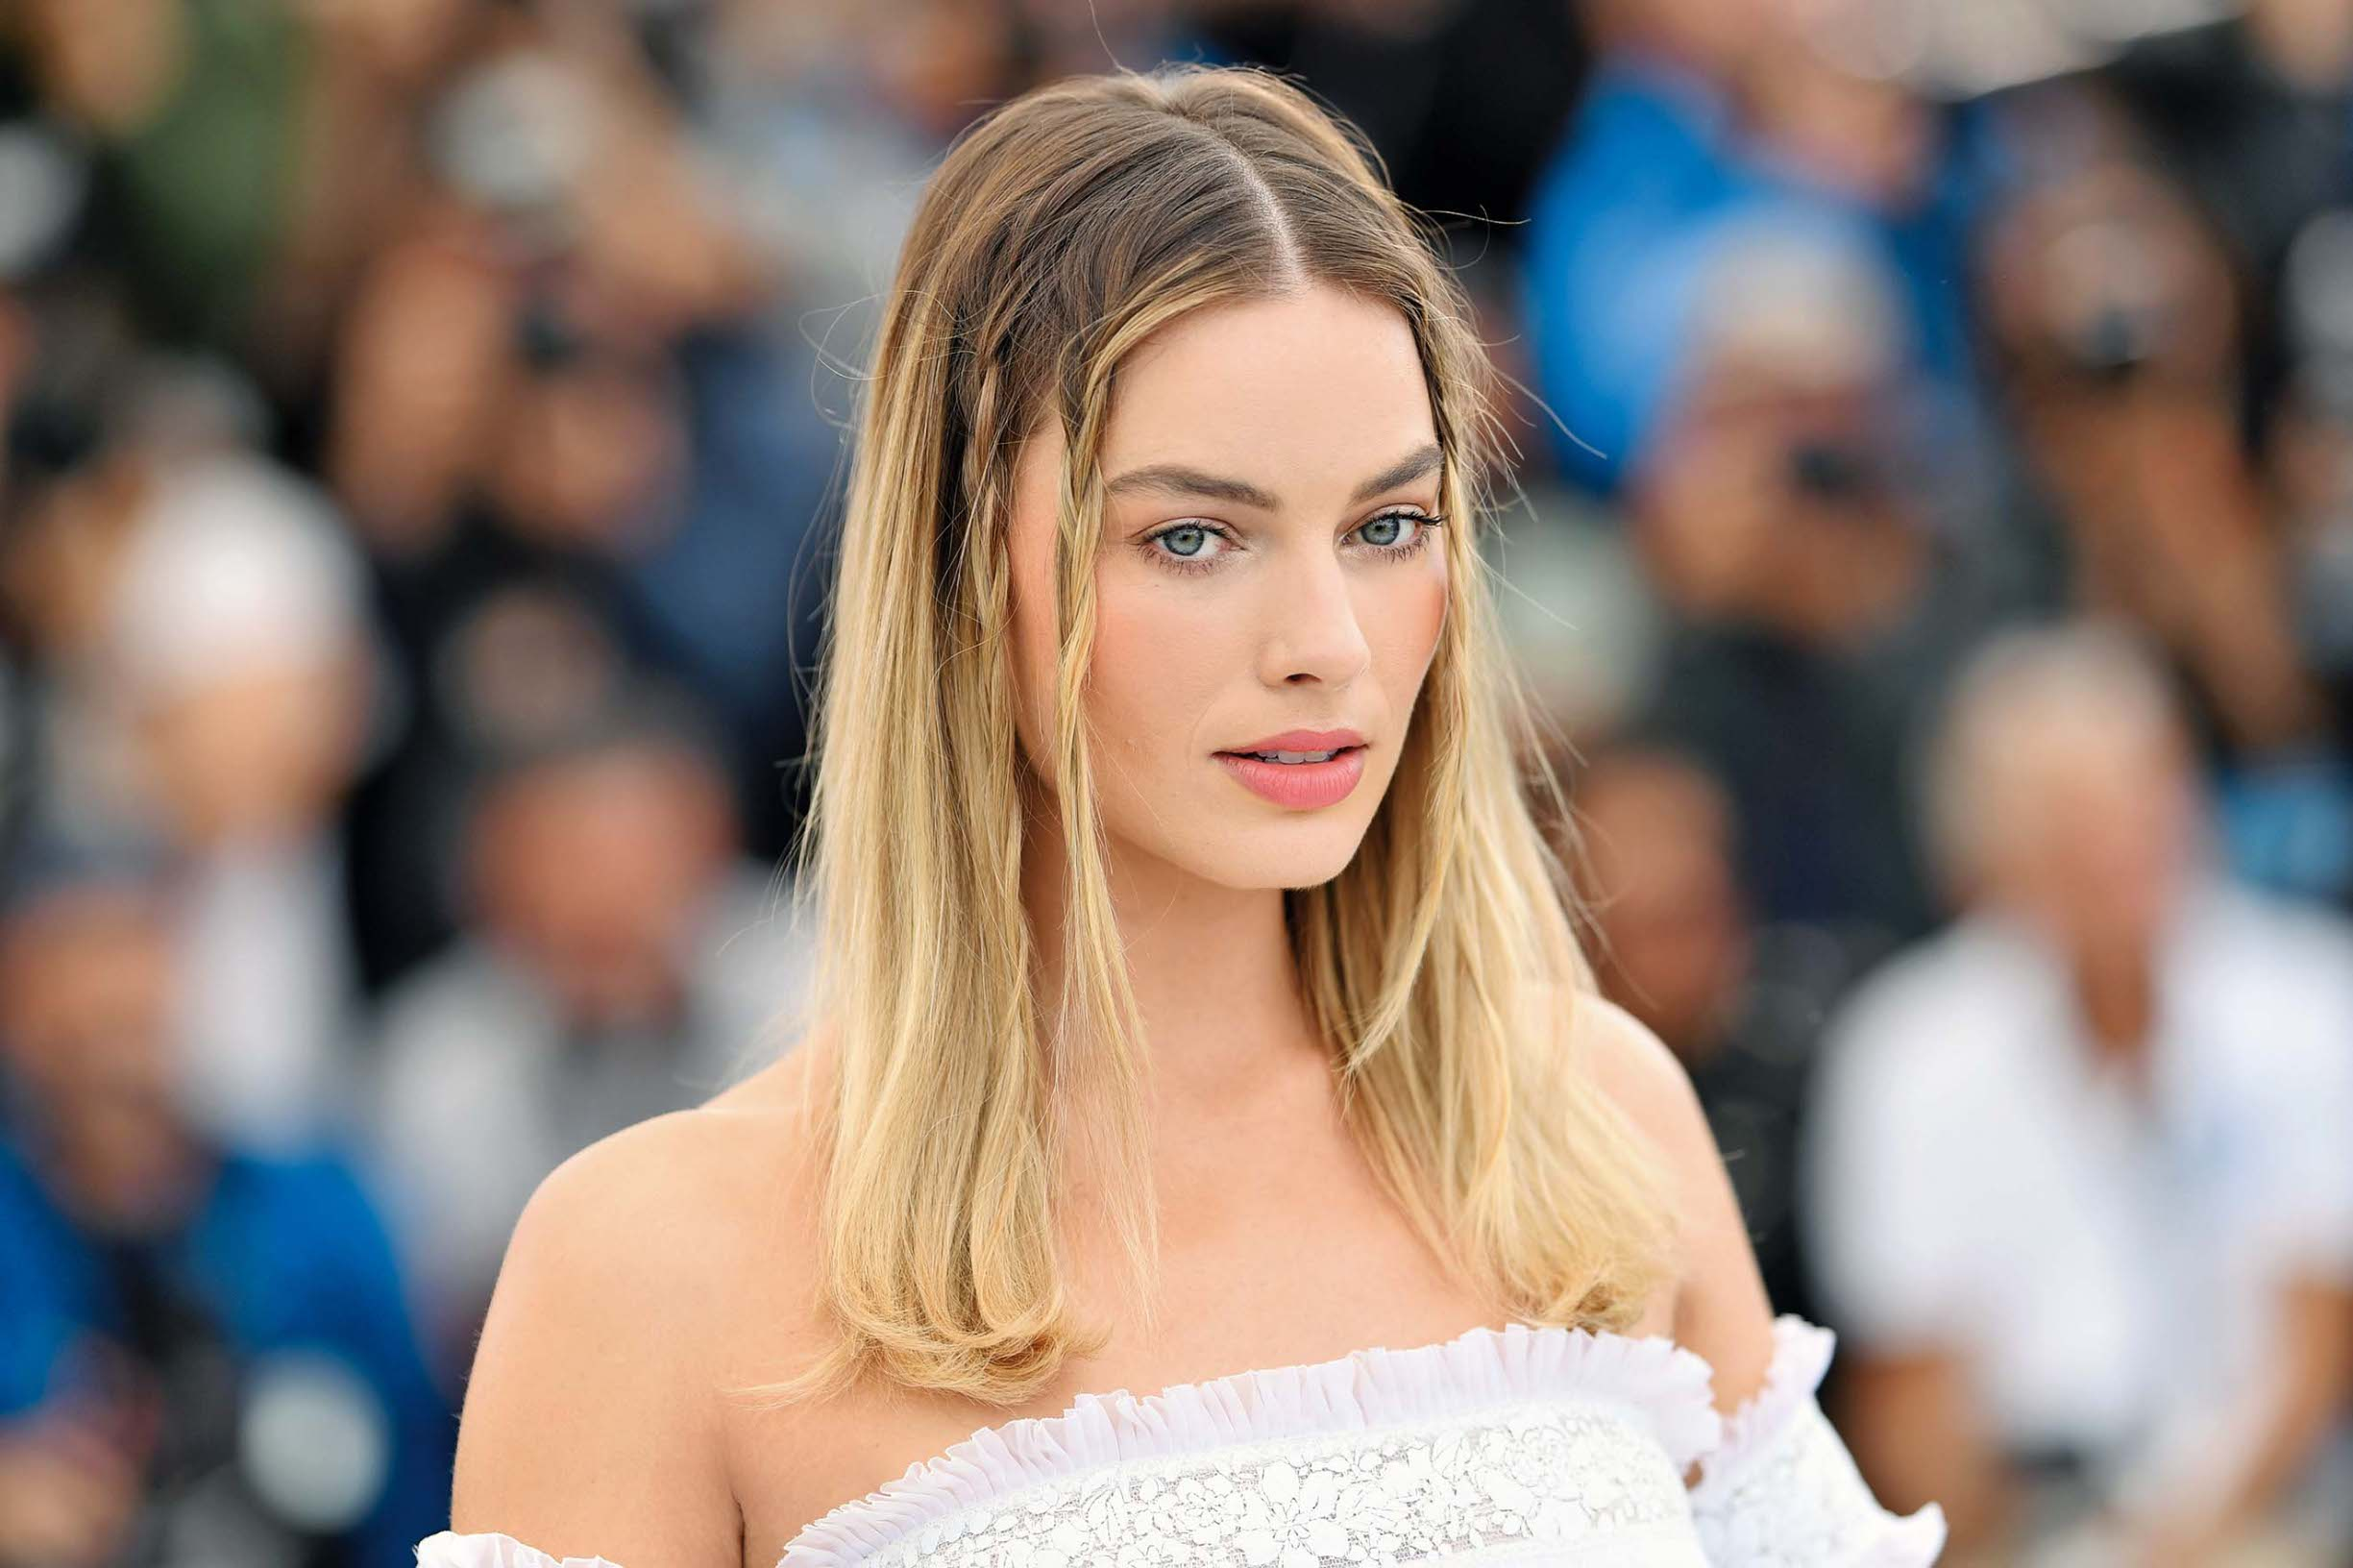 CANNES, FRANCE - MAY 22: Margot Robbie attends thephotocall for